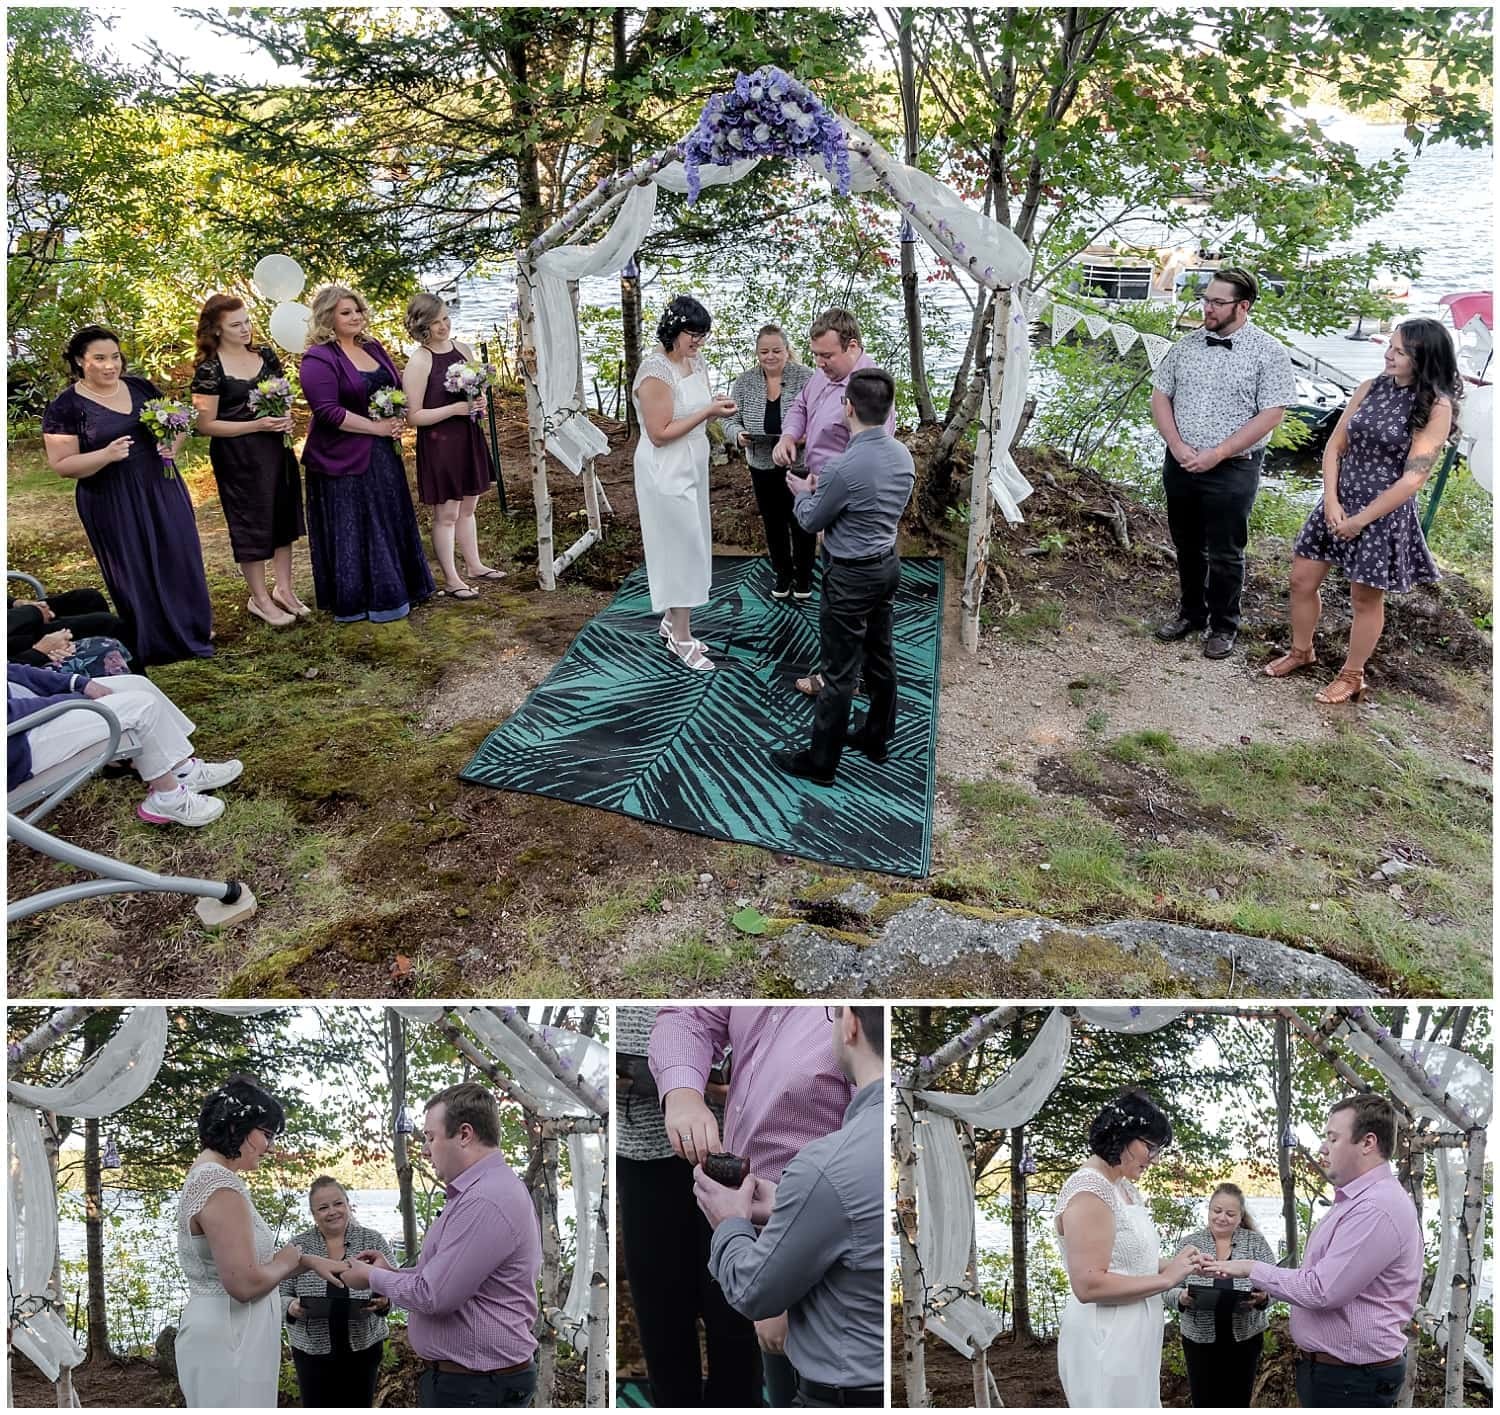 The bride and groom exchange wedding rings during their intimate covid wedding in Hubbards NS.